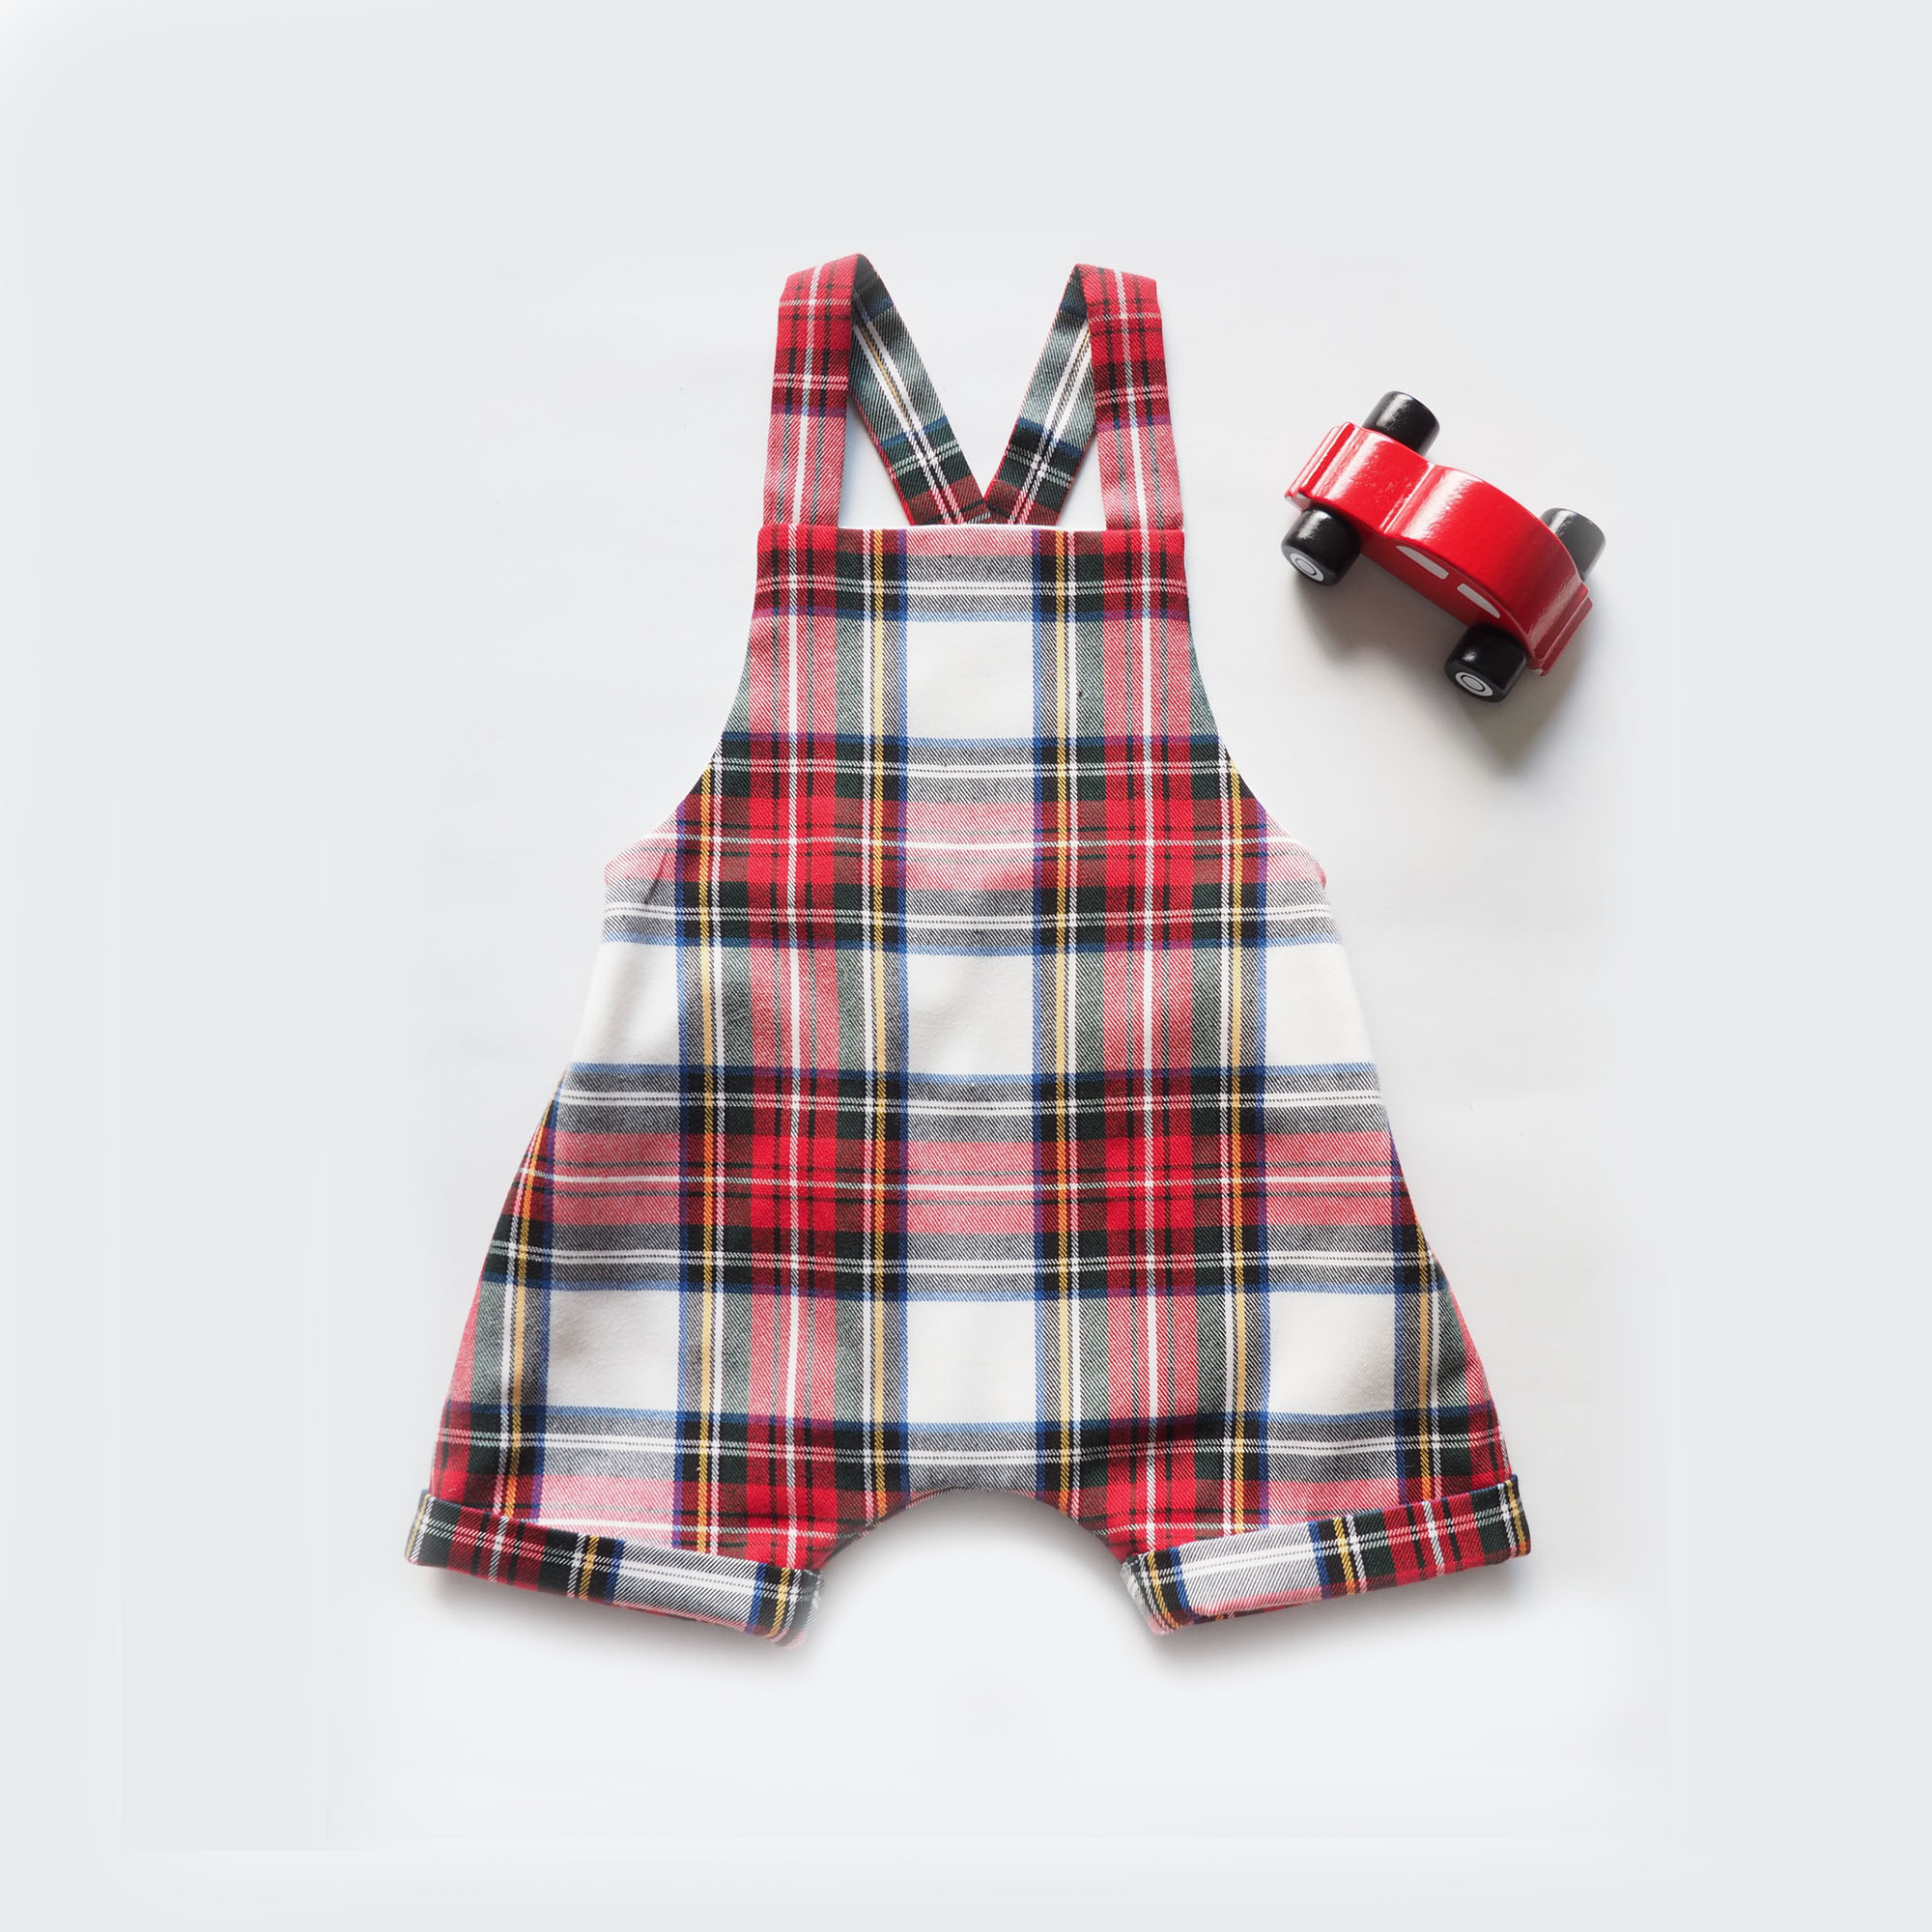 Baby romper,overalls,dungarees,jumpsuit,white,red,black,yellow tartan,miauss